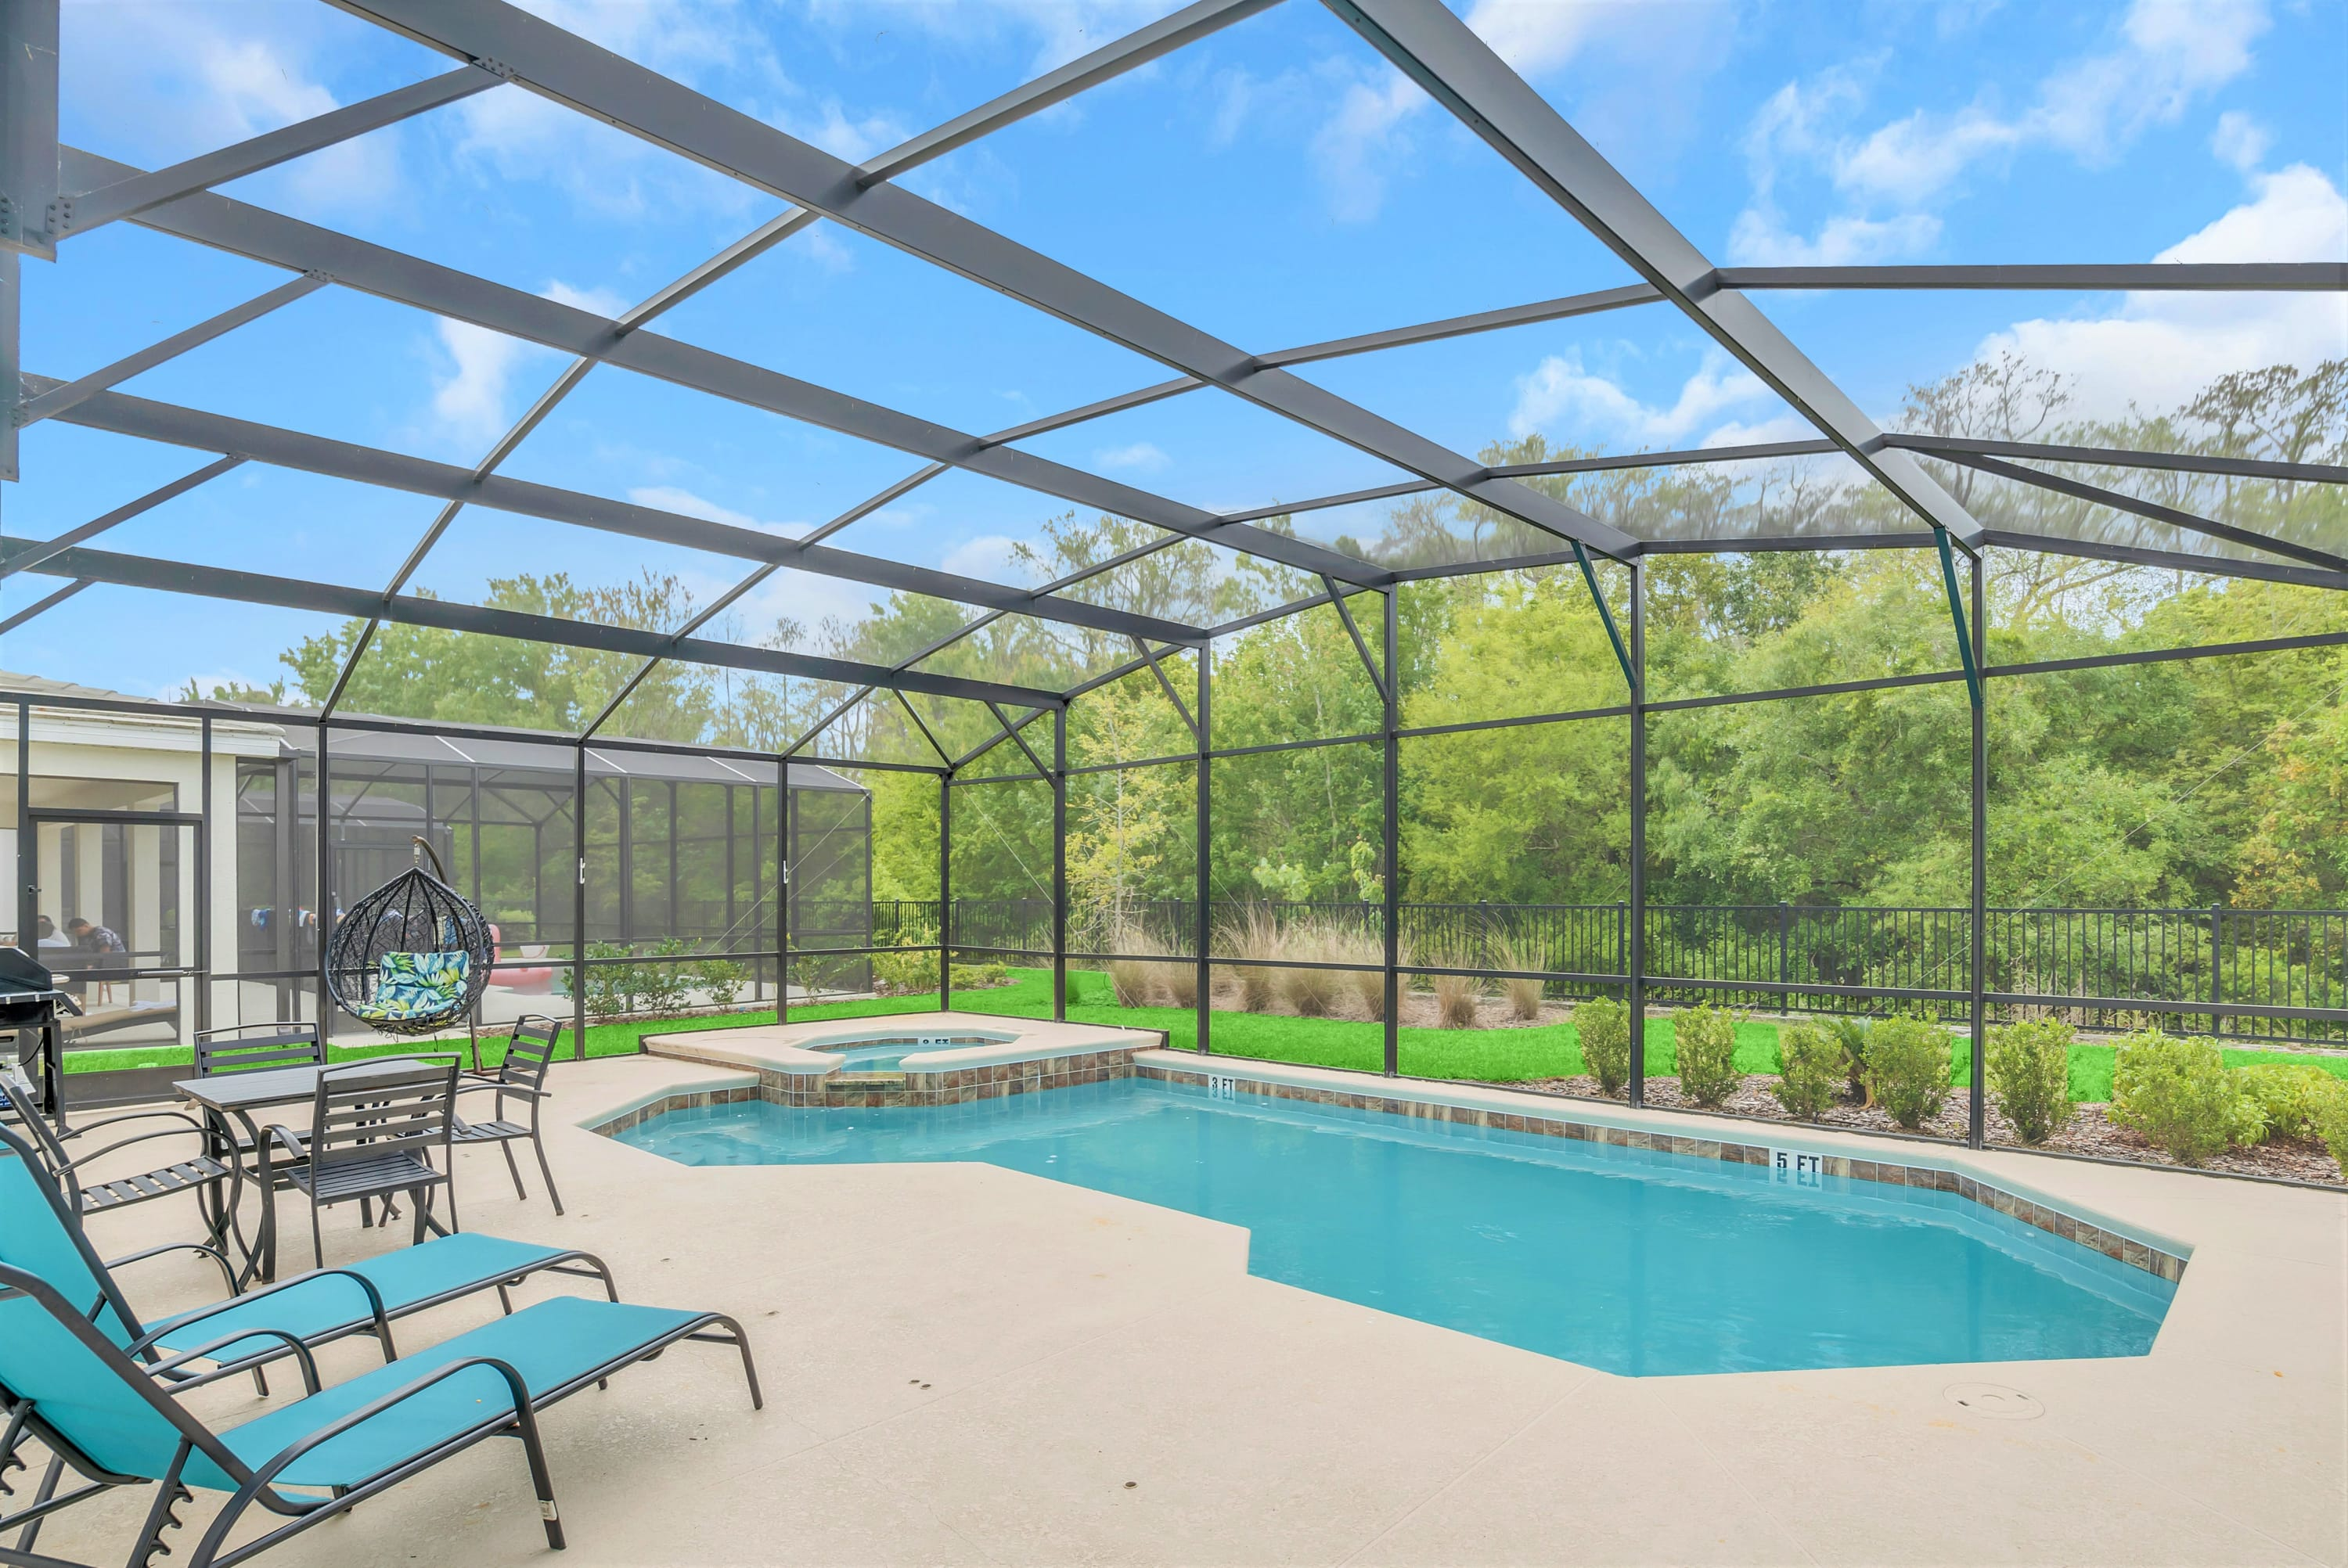 6BR Resort Home - Near Disney - Private Pool and Hot Tub!